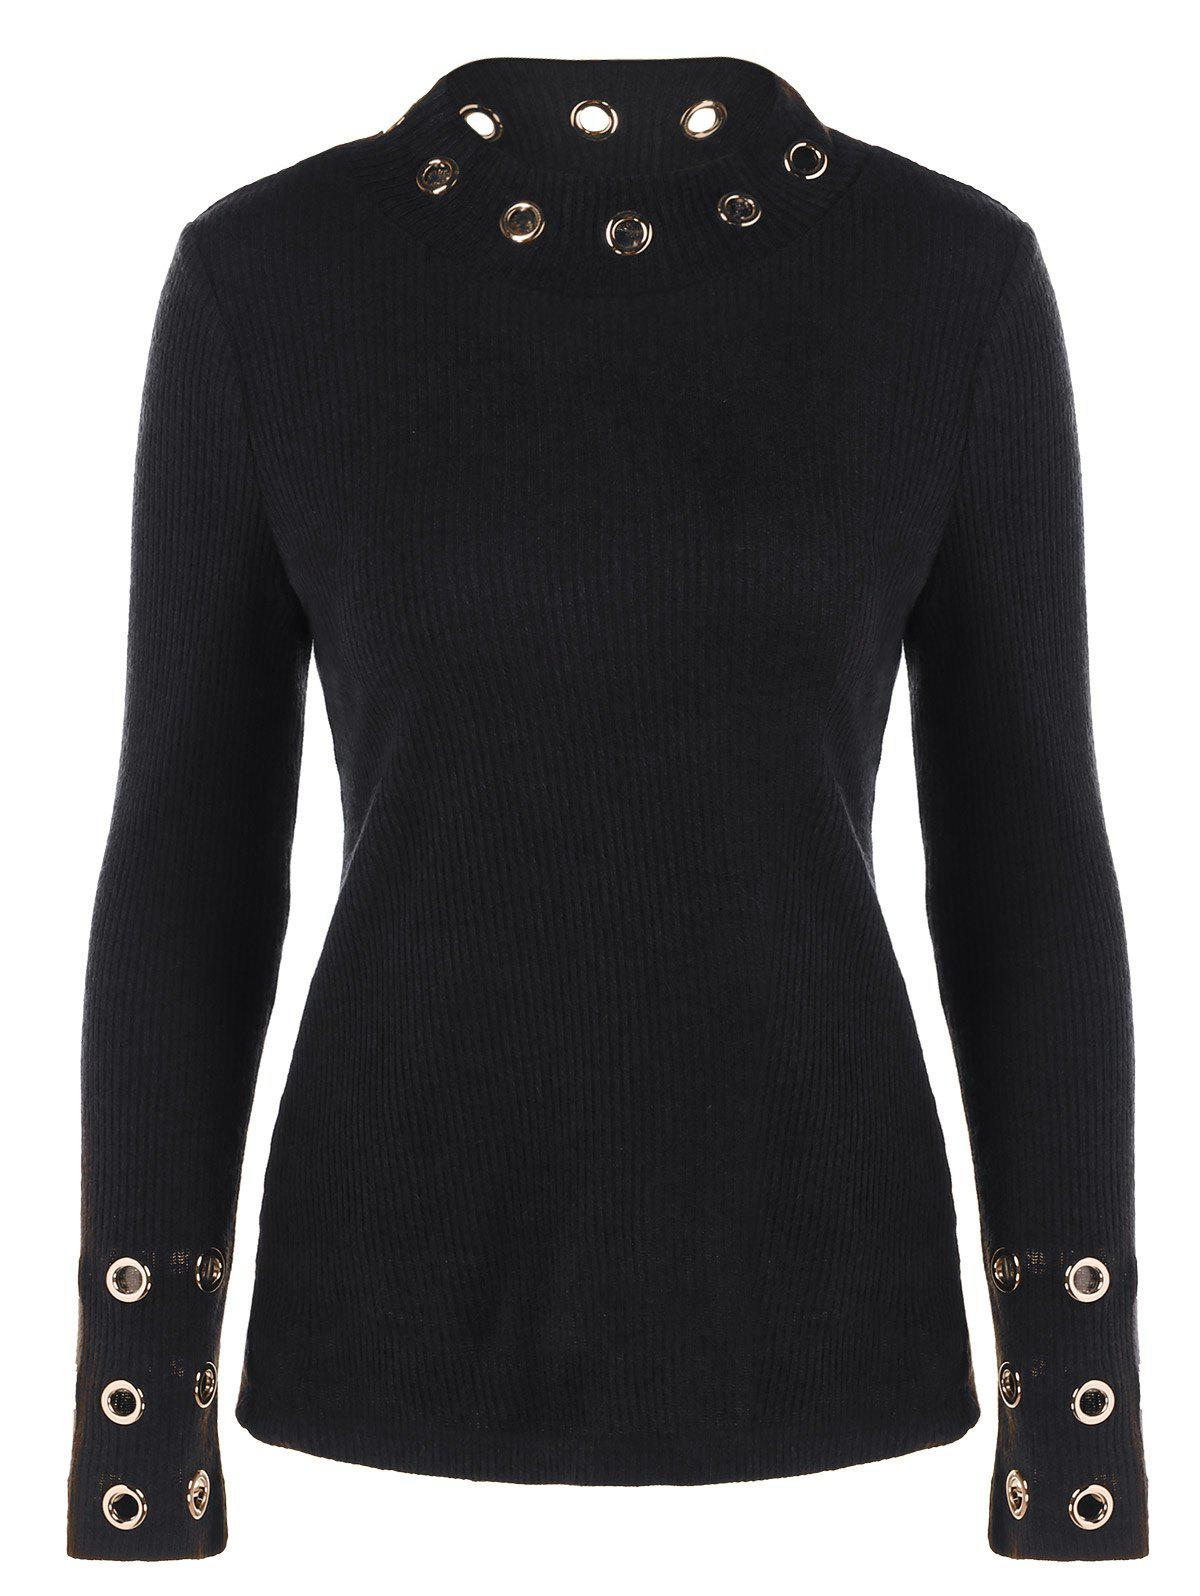 Ribbed Knitwear with Eyelet Embellished - BLACK L